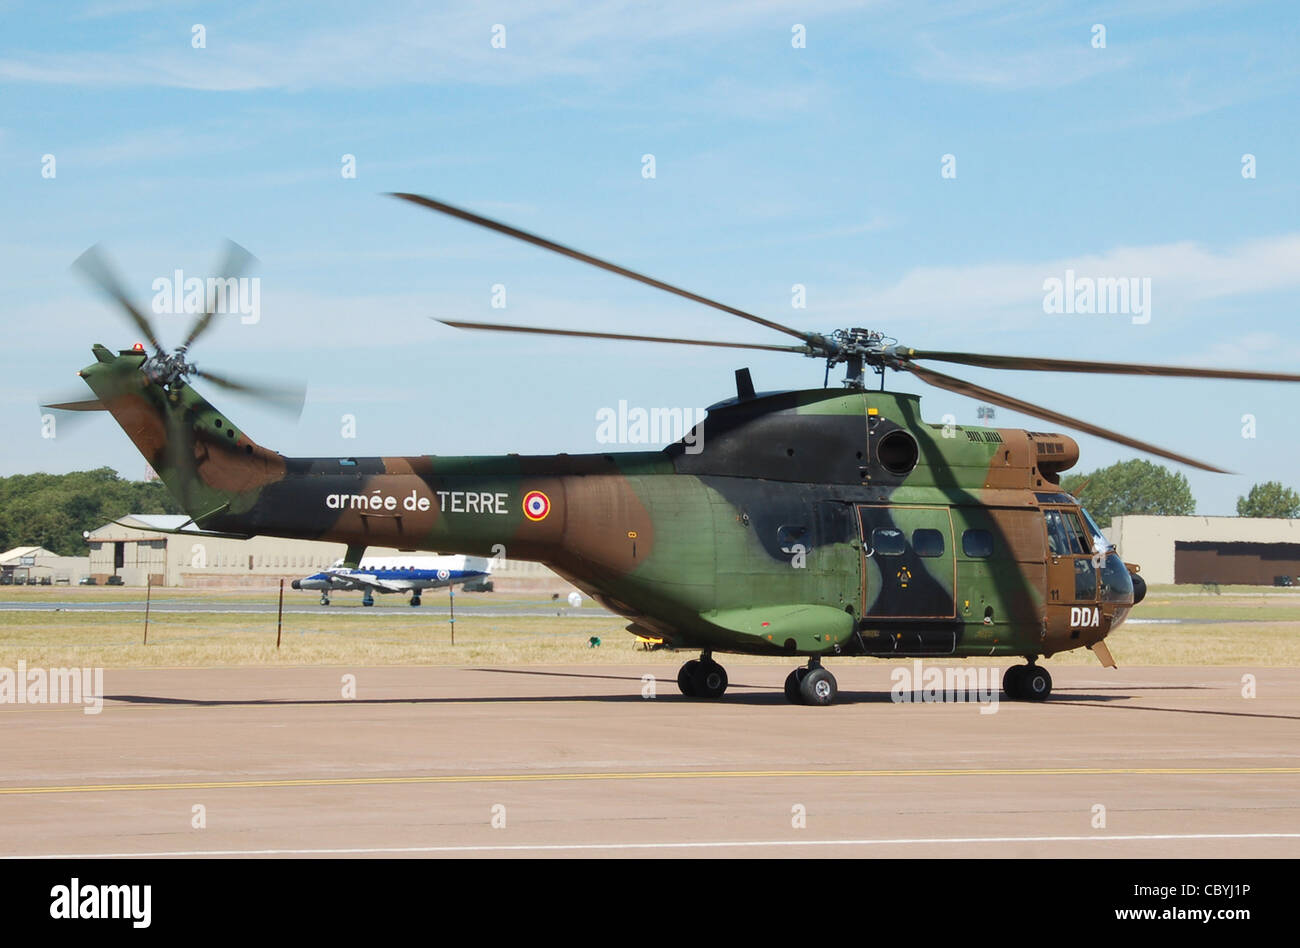 French Air Force (Armee de Terre) Aerospatiale SA 330B Puma (military codes DDA and 11) at the 2010 RIAT Stock Photo